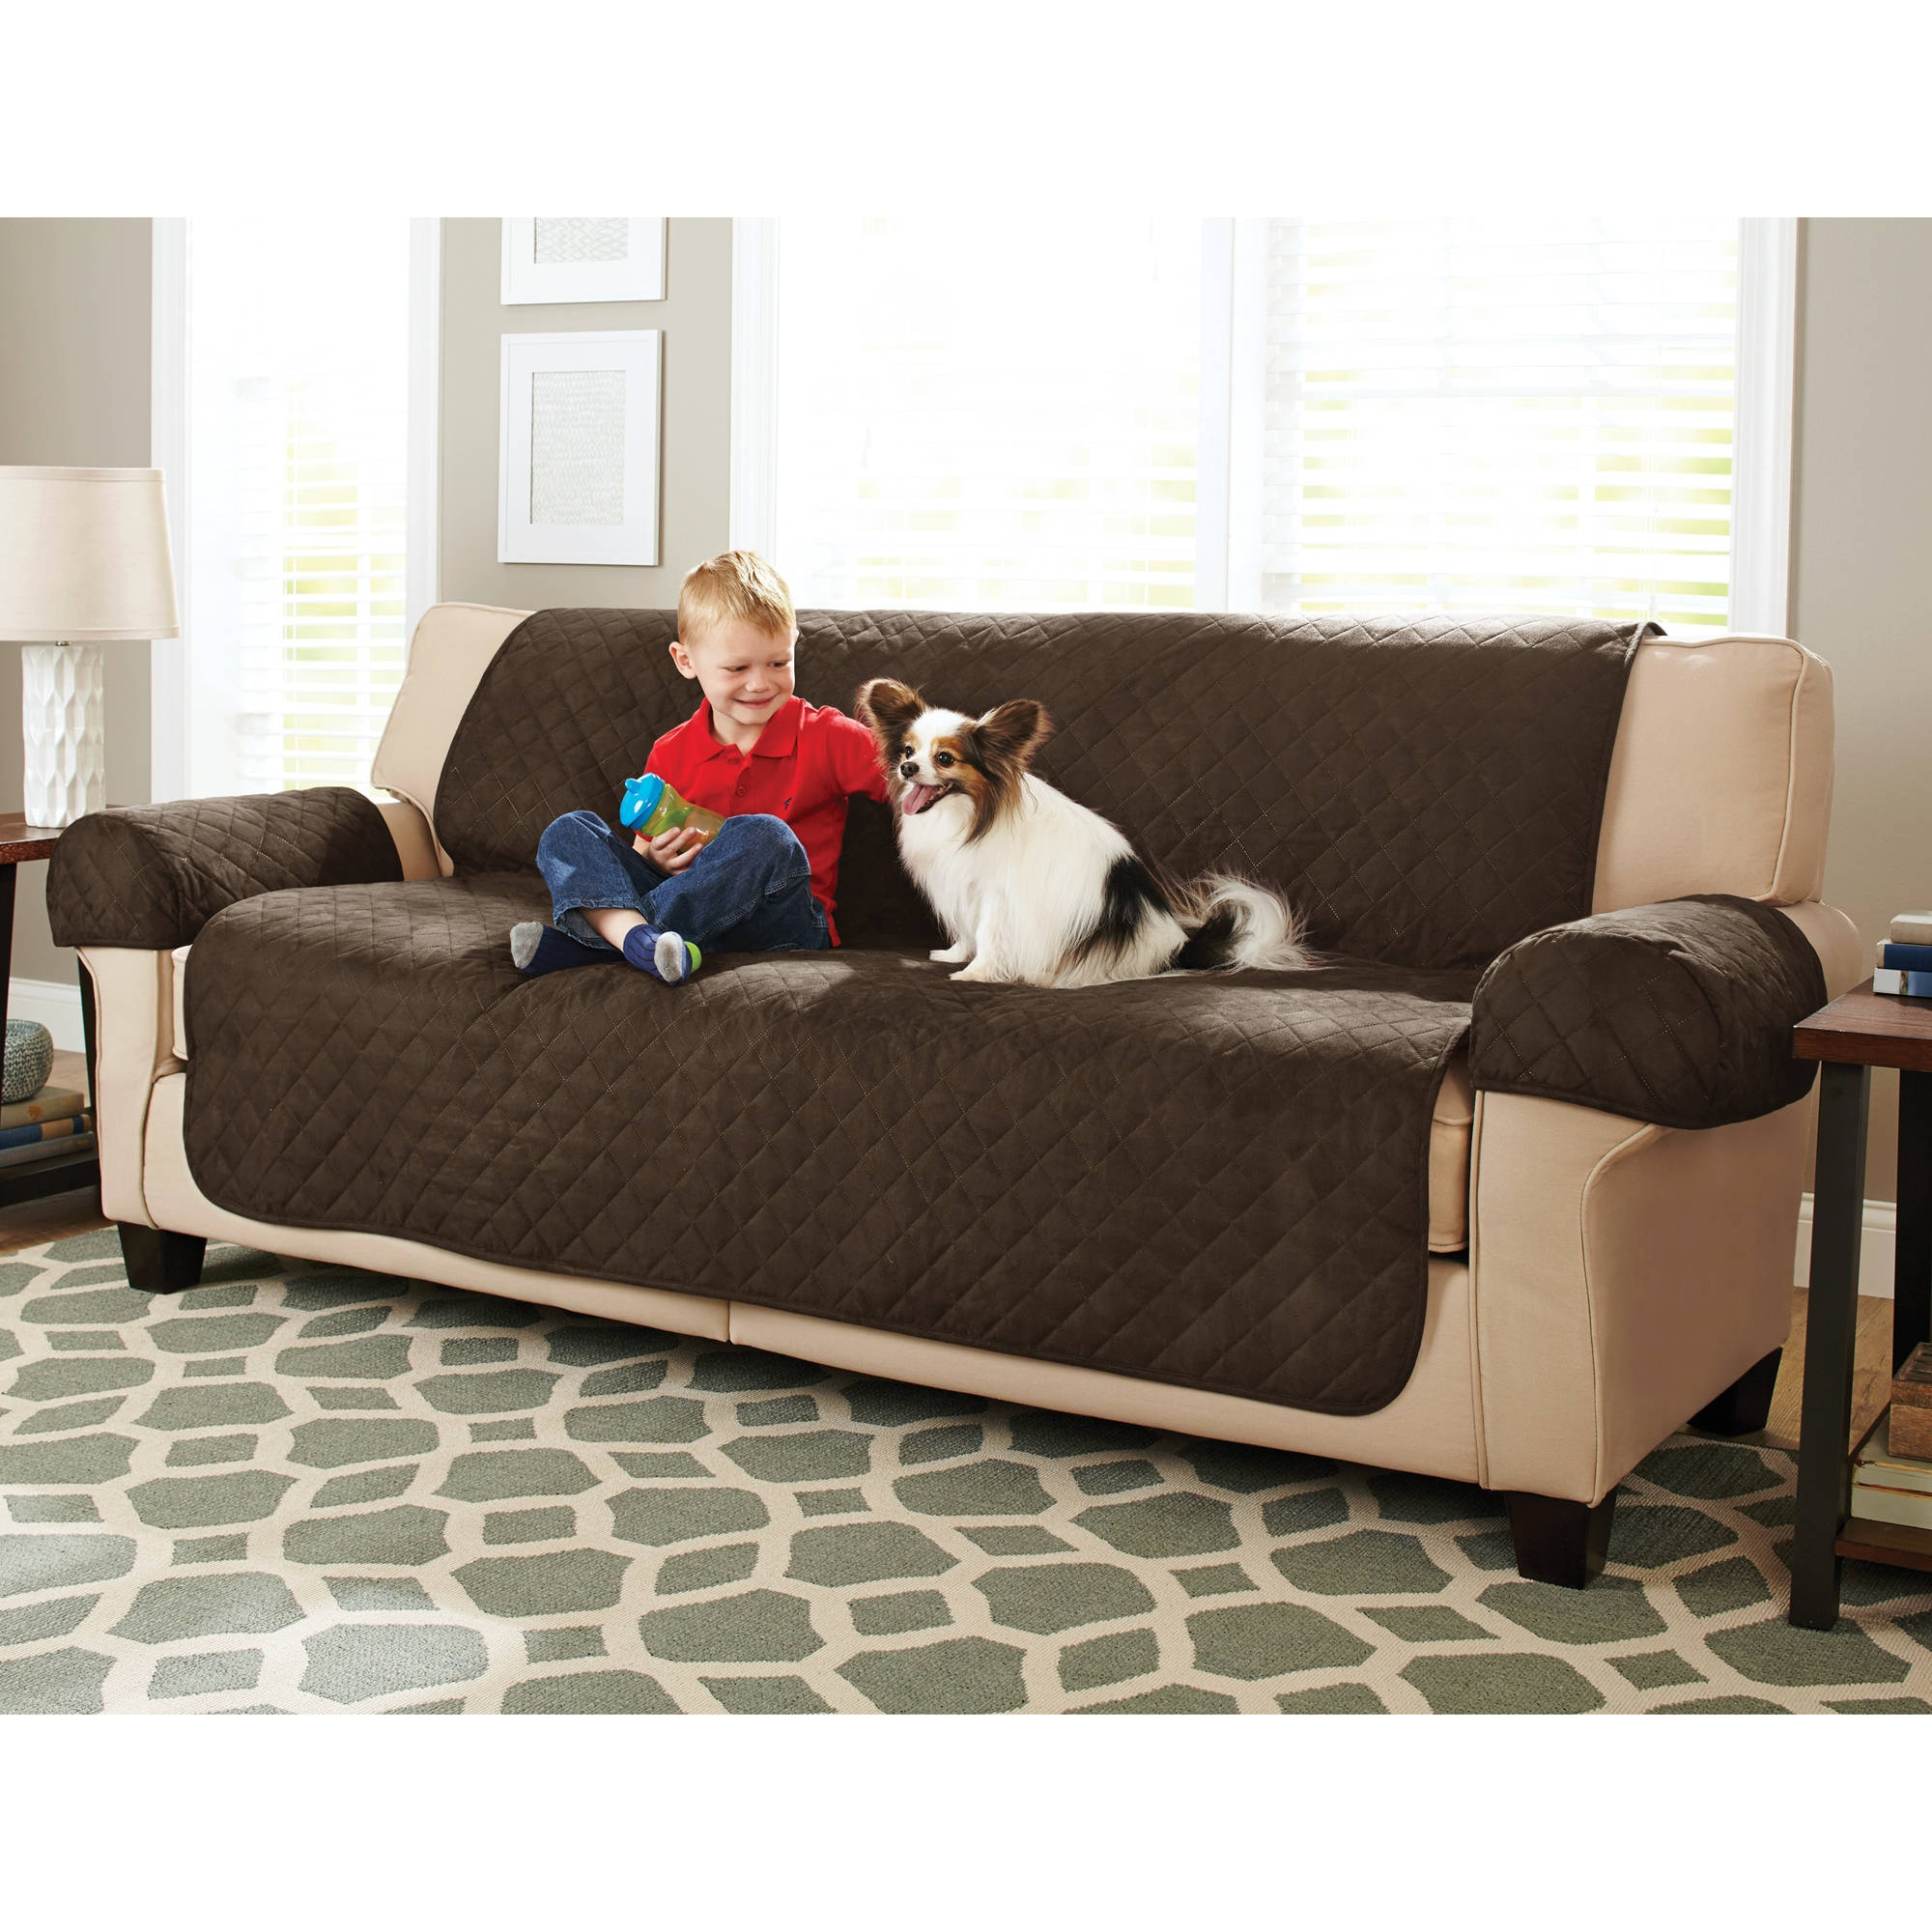 Washable Sofa Pertaining To Washable Sofas (Image 15 of 15)